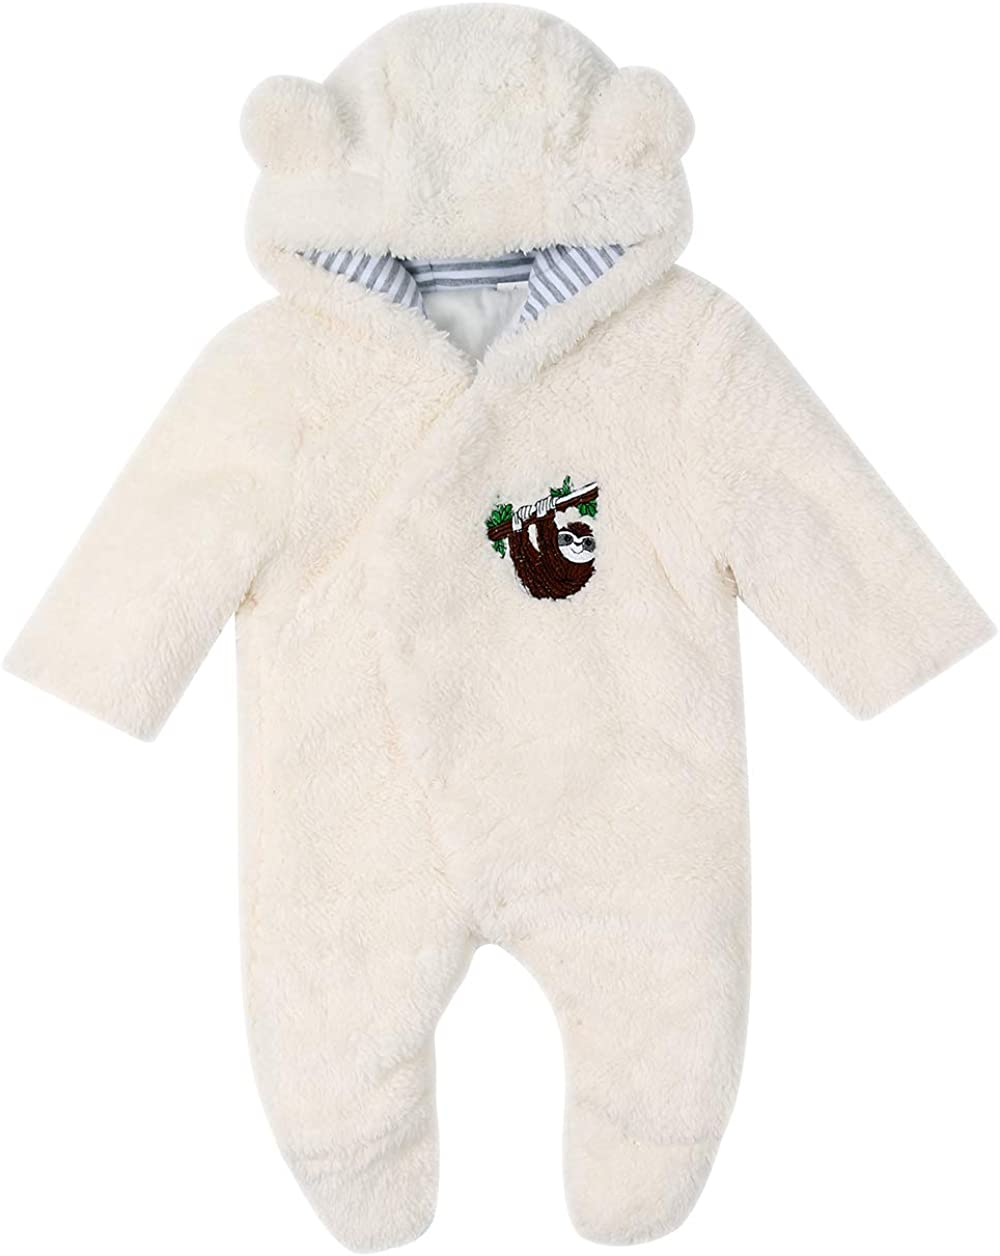 DDY Baby Fleece Snowsuit/Romper Hooded Footed/Onesies Flannel Zipper Jumpsuit/Winter Coat Outfit Suit for Newborn Baby Boy Girl